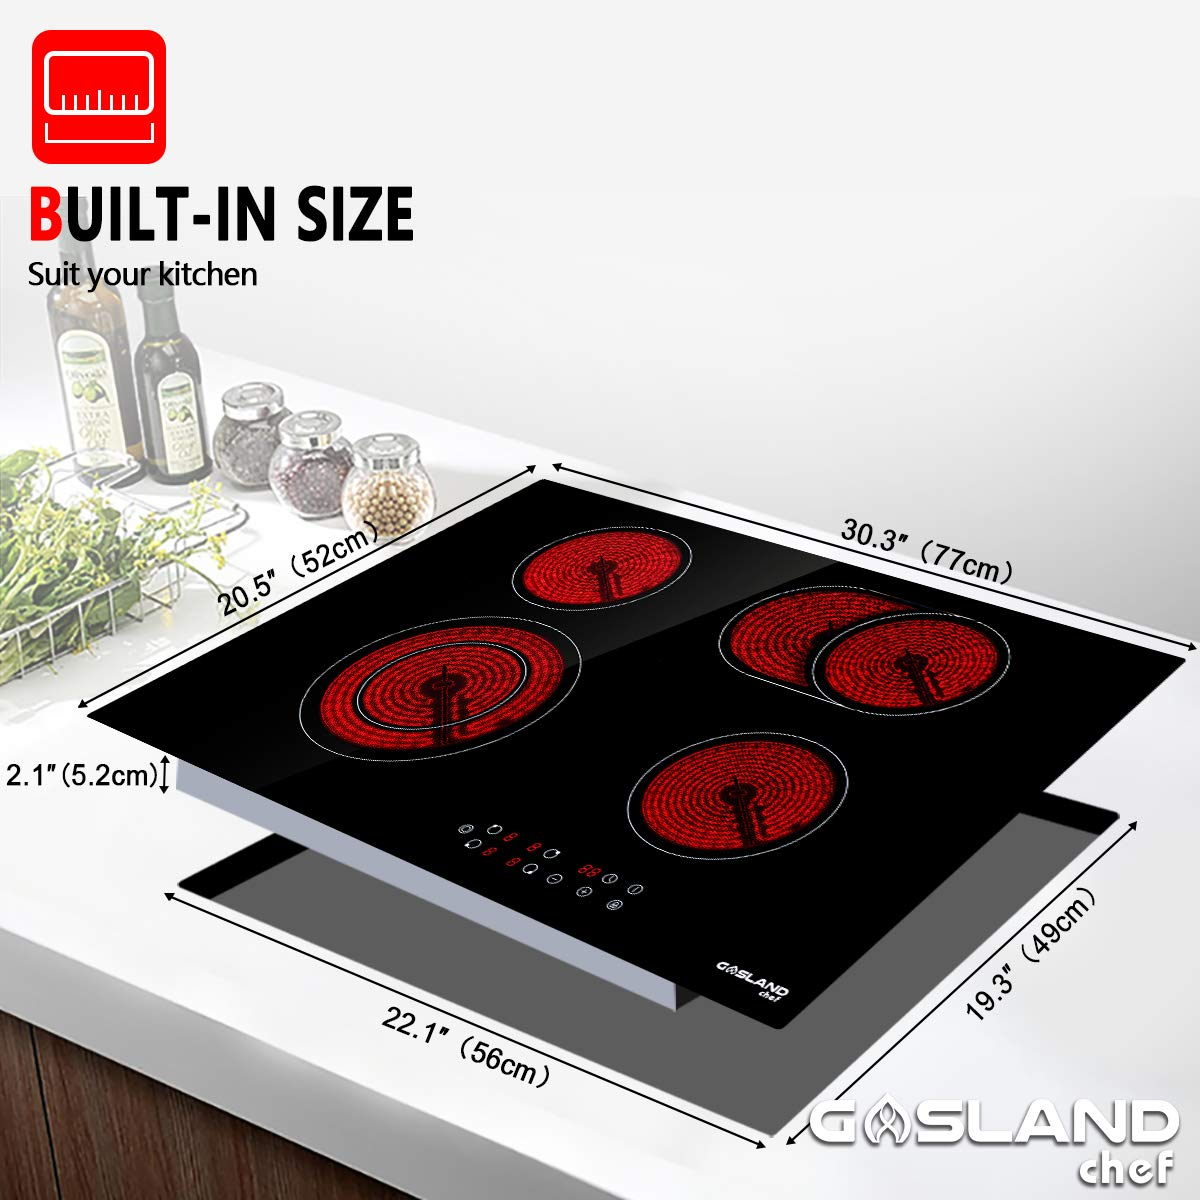 30 Electric Stove With 4 Burners Gasland chef IH77BF Built-in Induction Cooker 9 Heating Level Settings Easy To Clean Kids Safety Lock Induction Cooktop Vitro Ceramic Surface Electric Cooktop